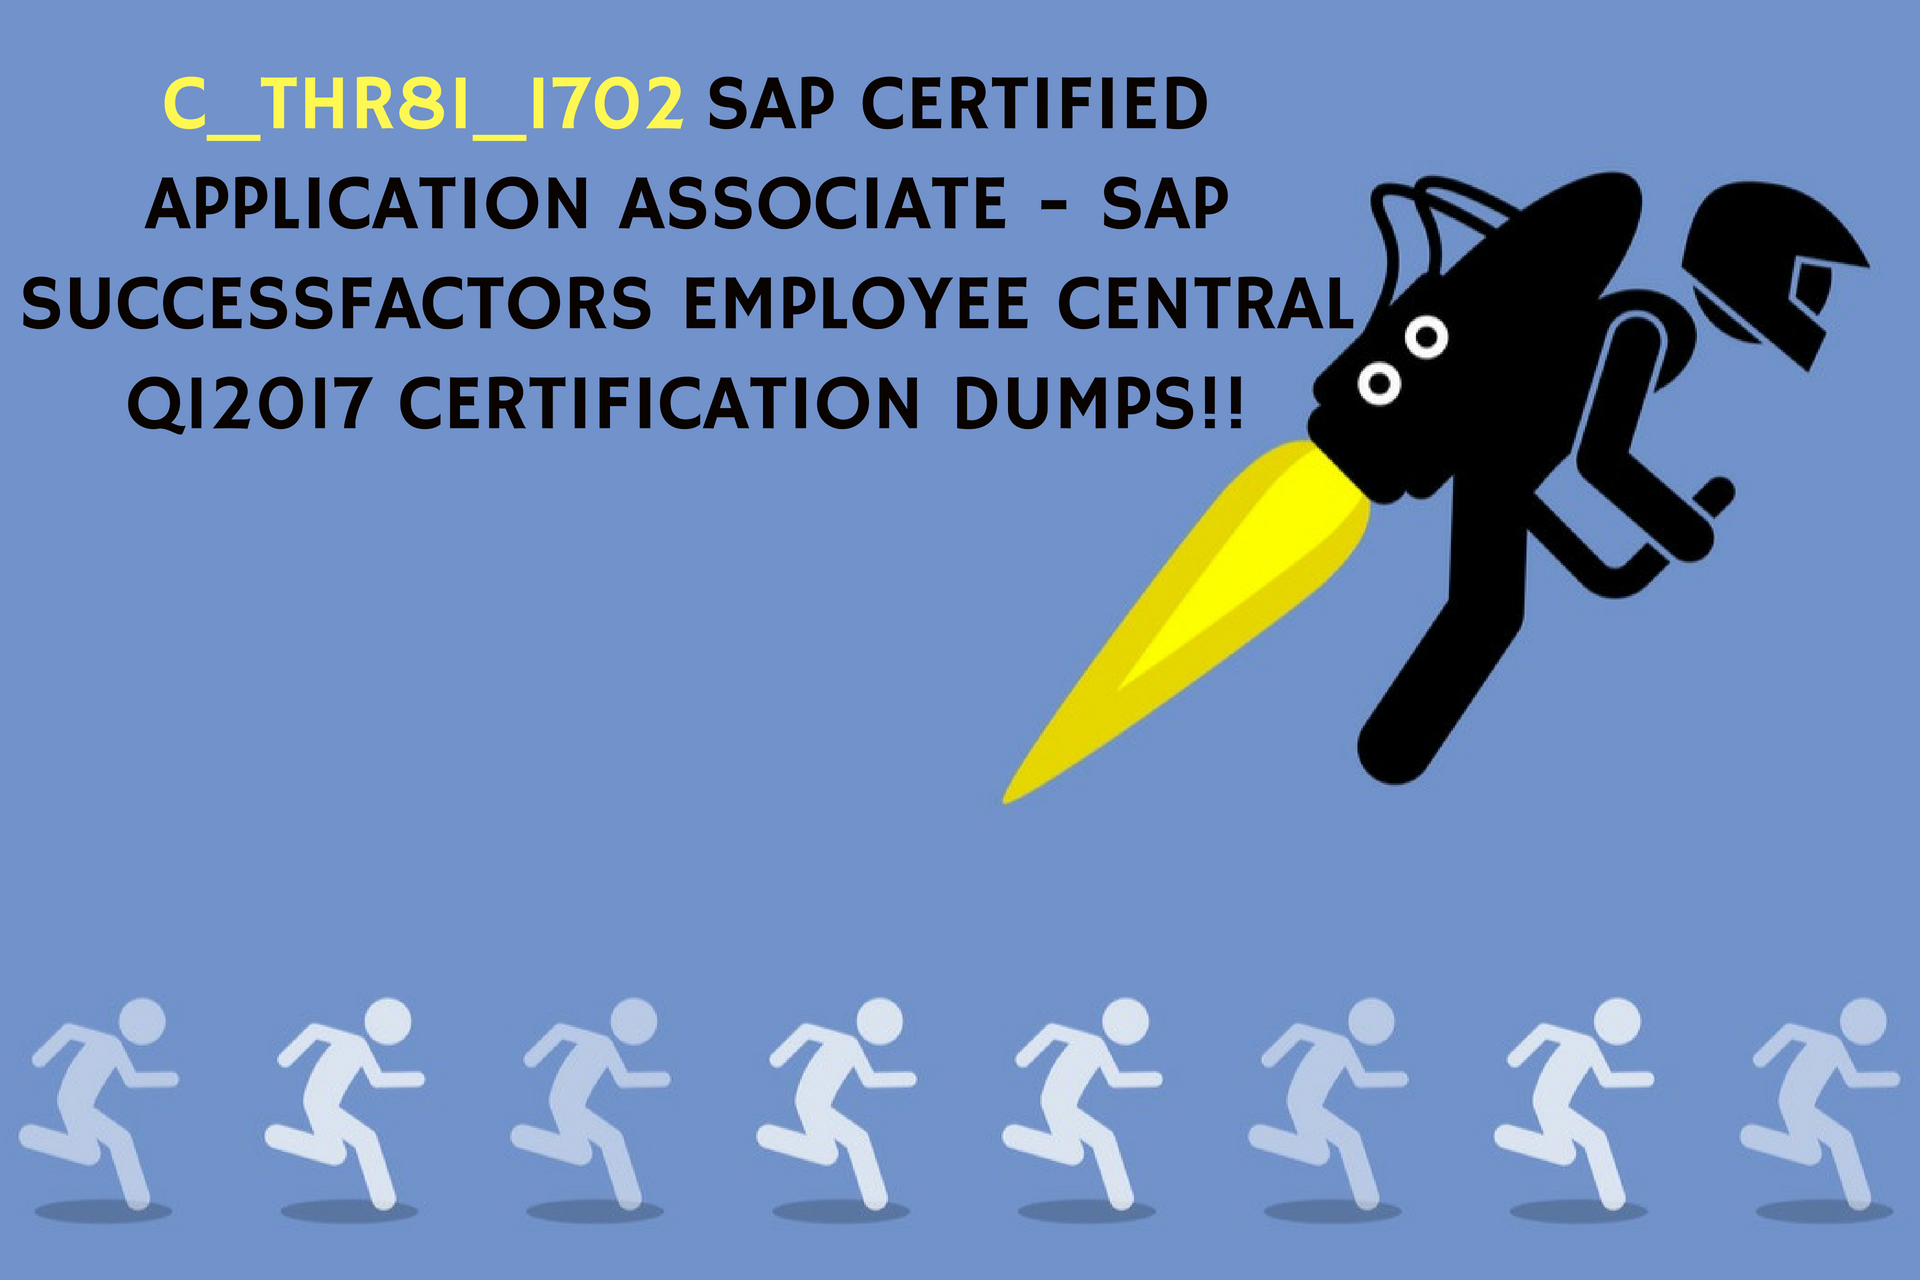 C_THR81_1702 - SAP Certified Application Associate - SAP